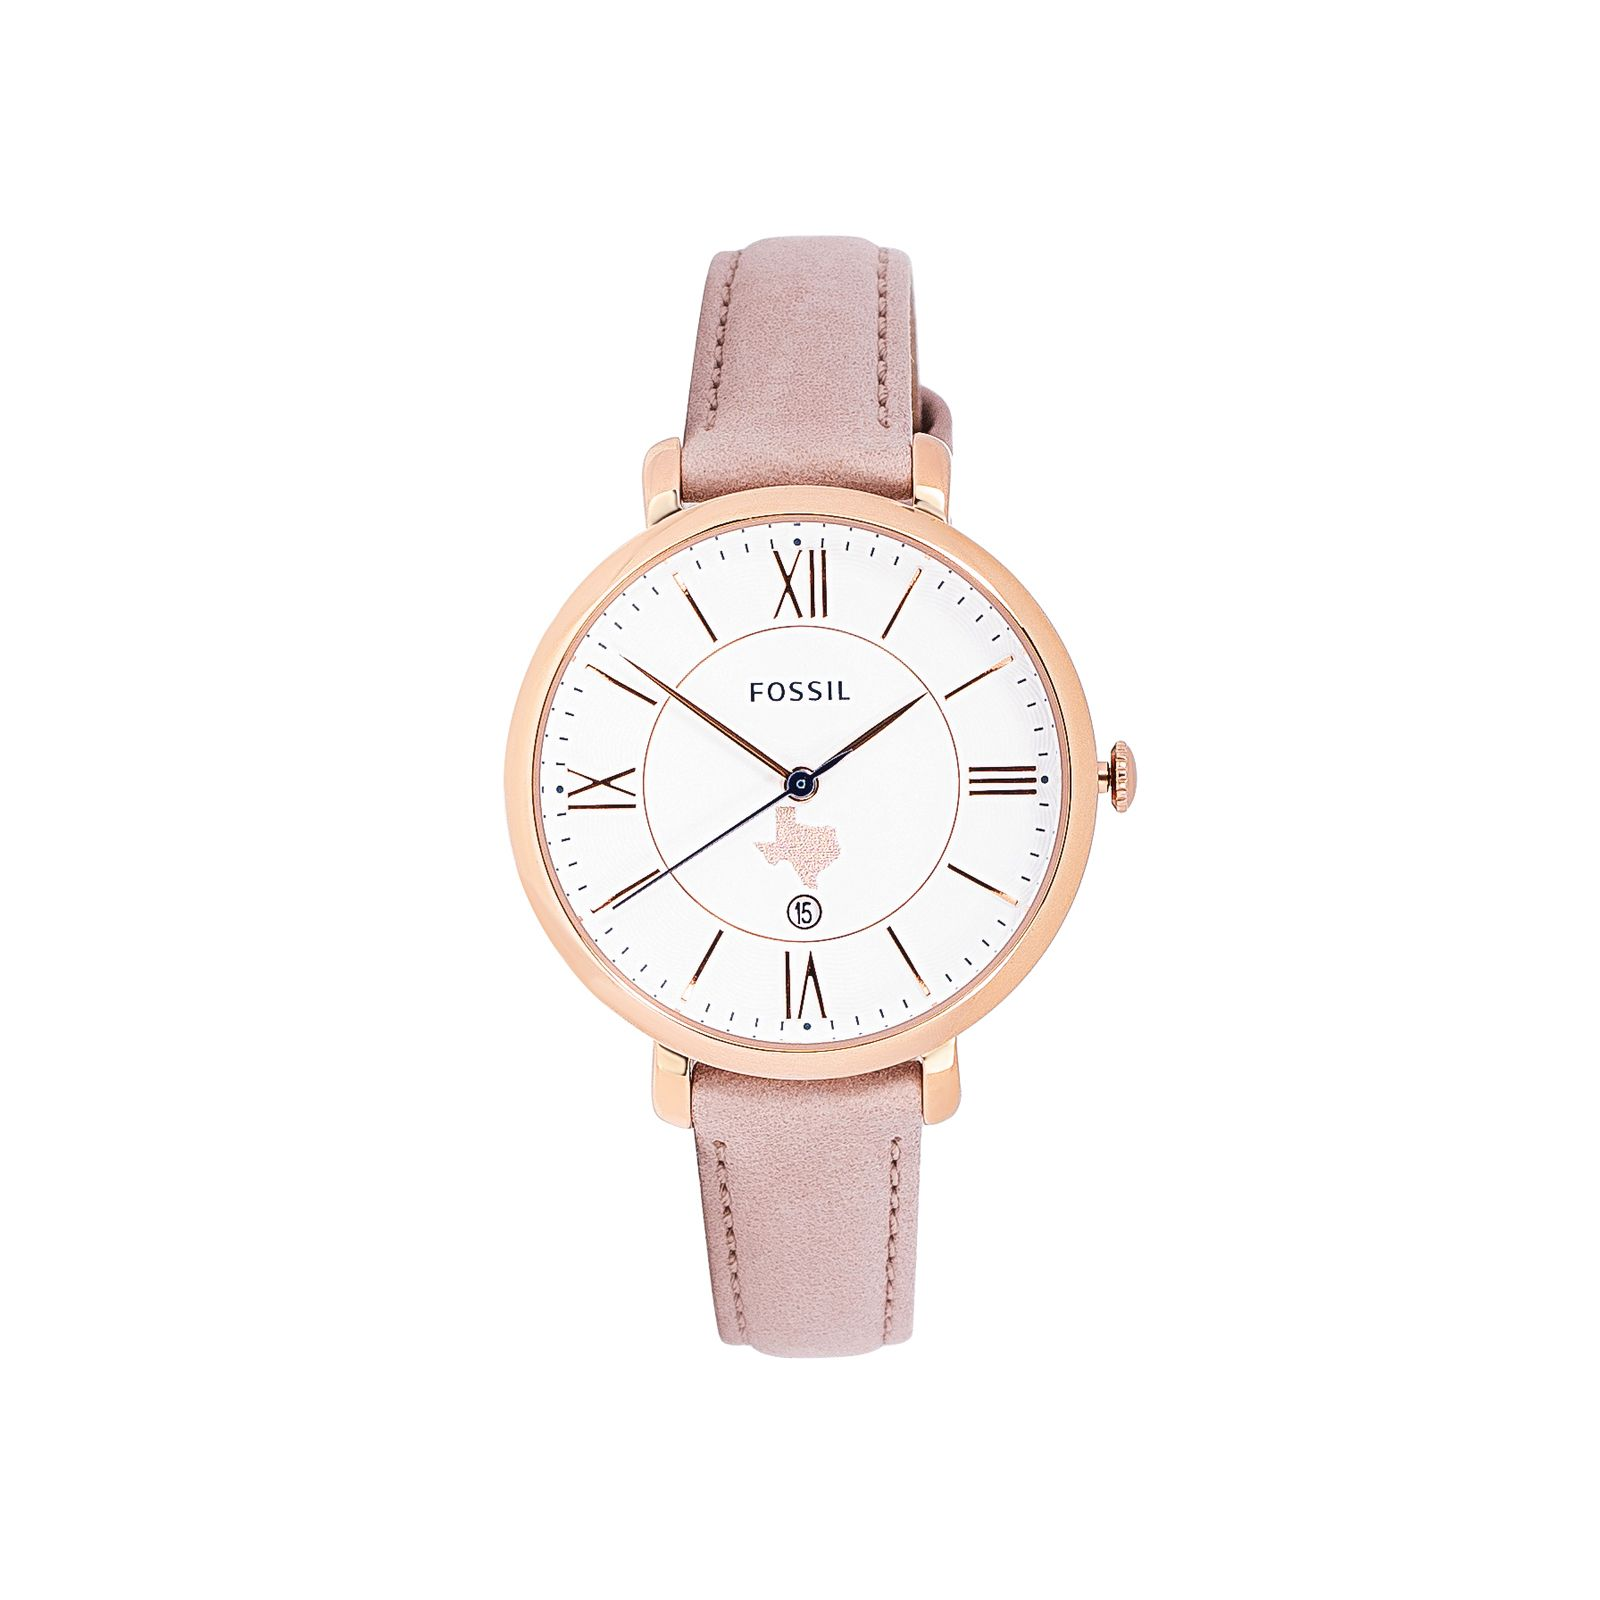 Fossil Texas Rose Gold Tone Watch